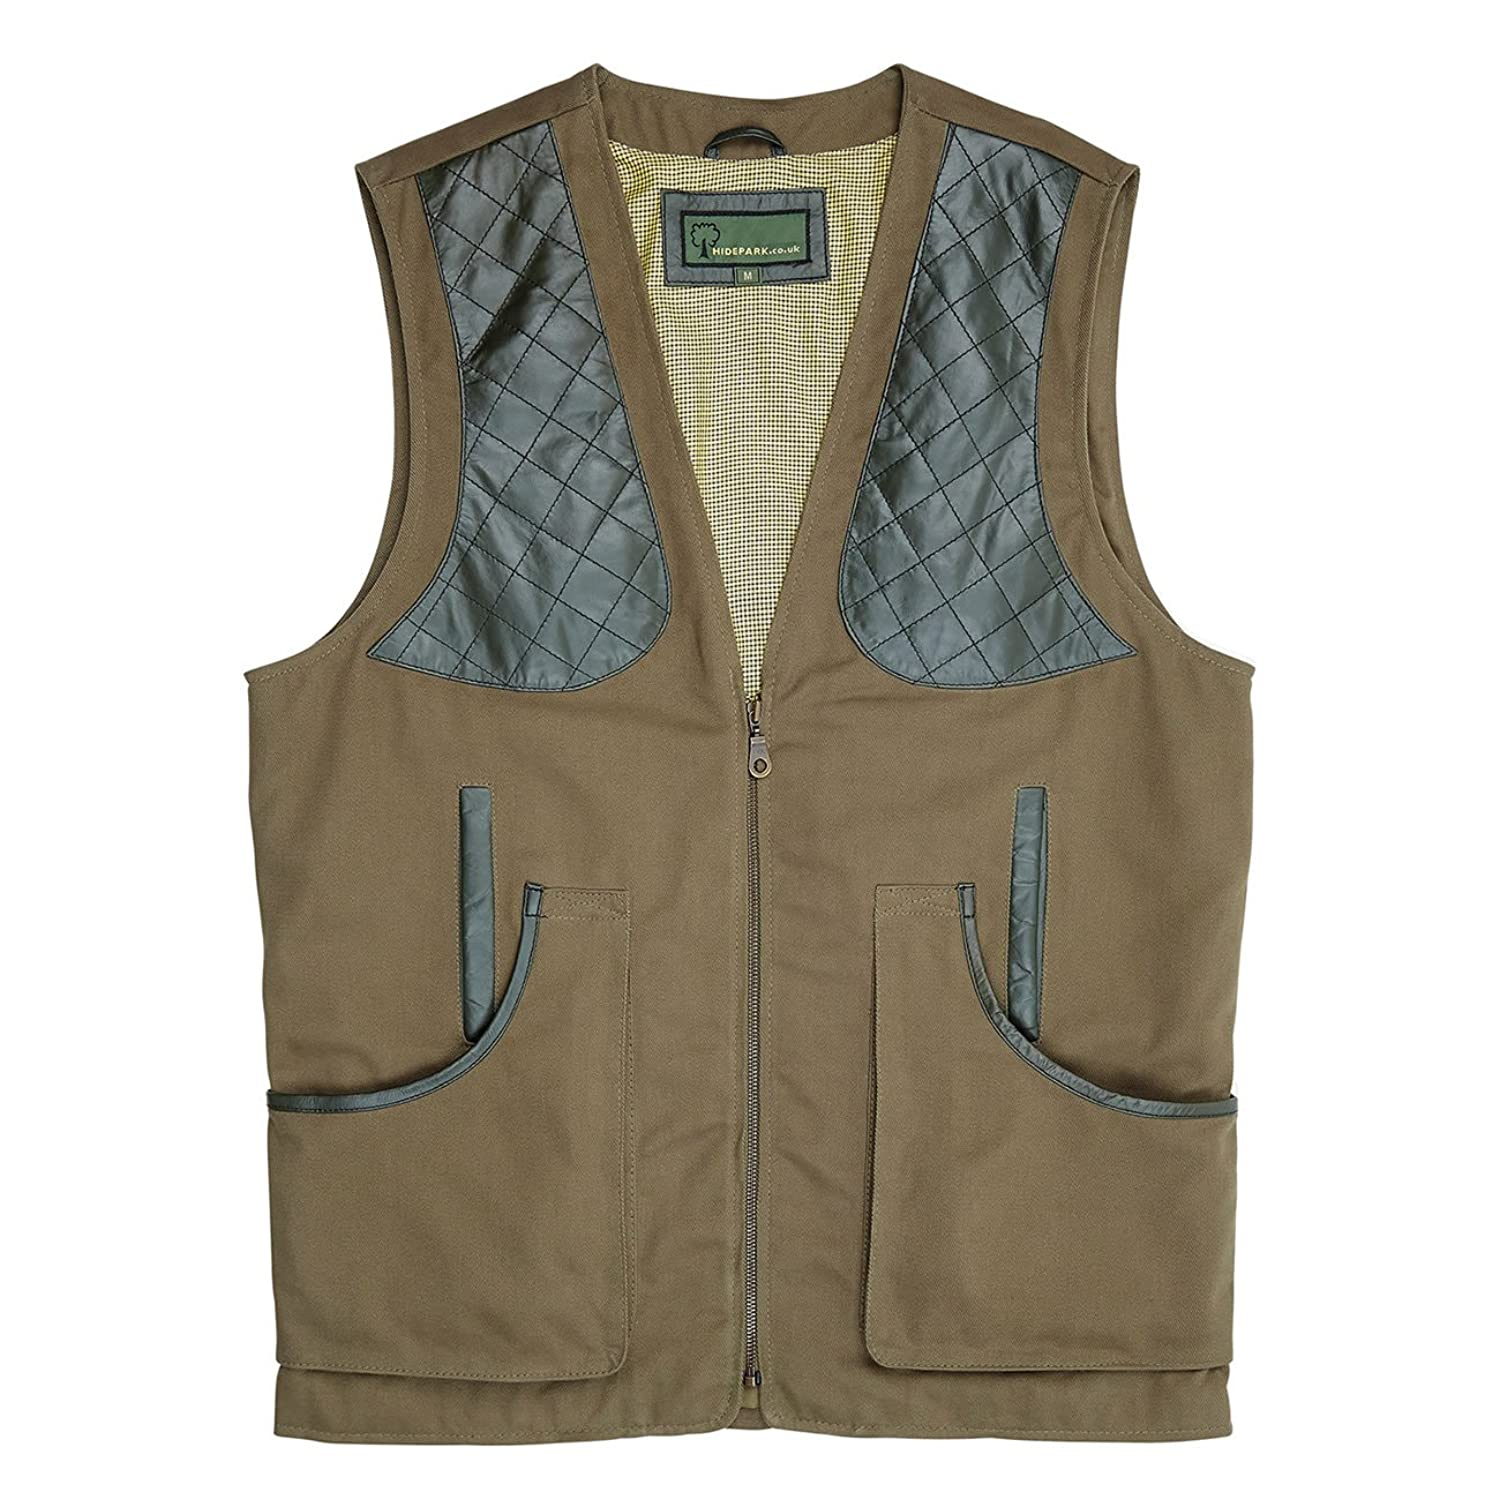 002C: Cotton Shooting Vest Green